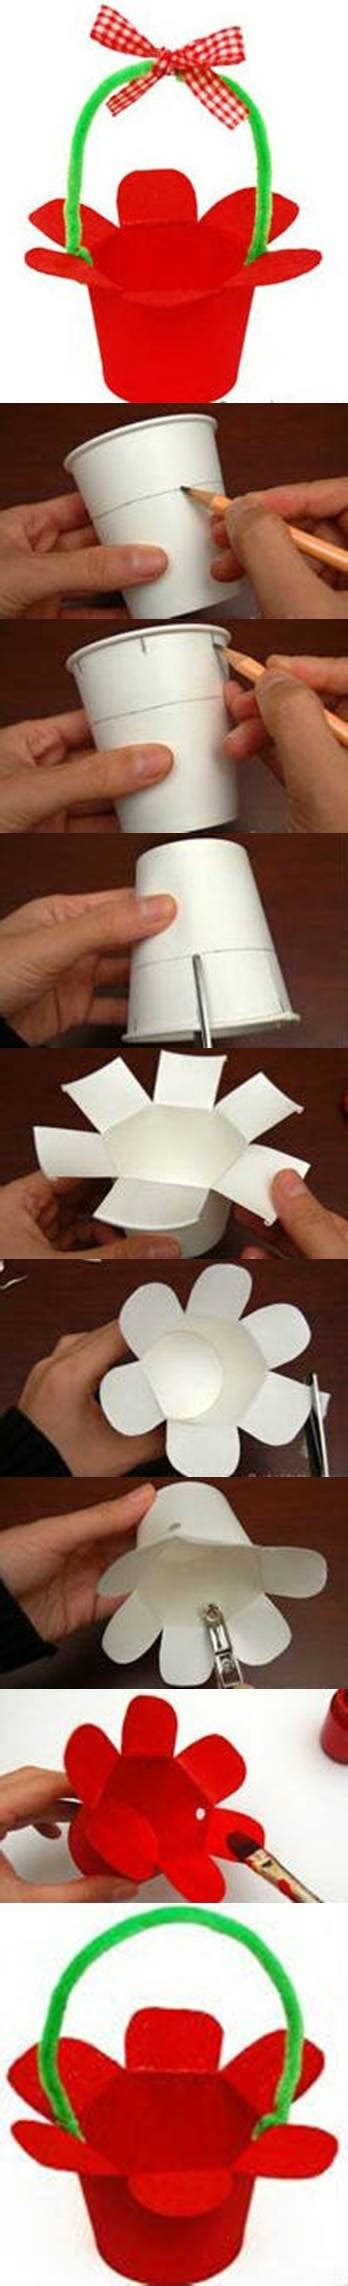 How To Make A Paper Basket Step By Step - how to make paper cup basket step by step diy tutorial